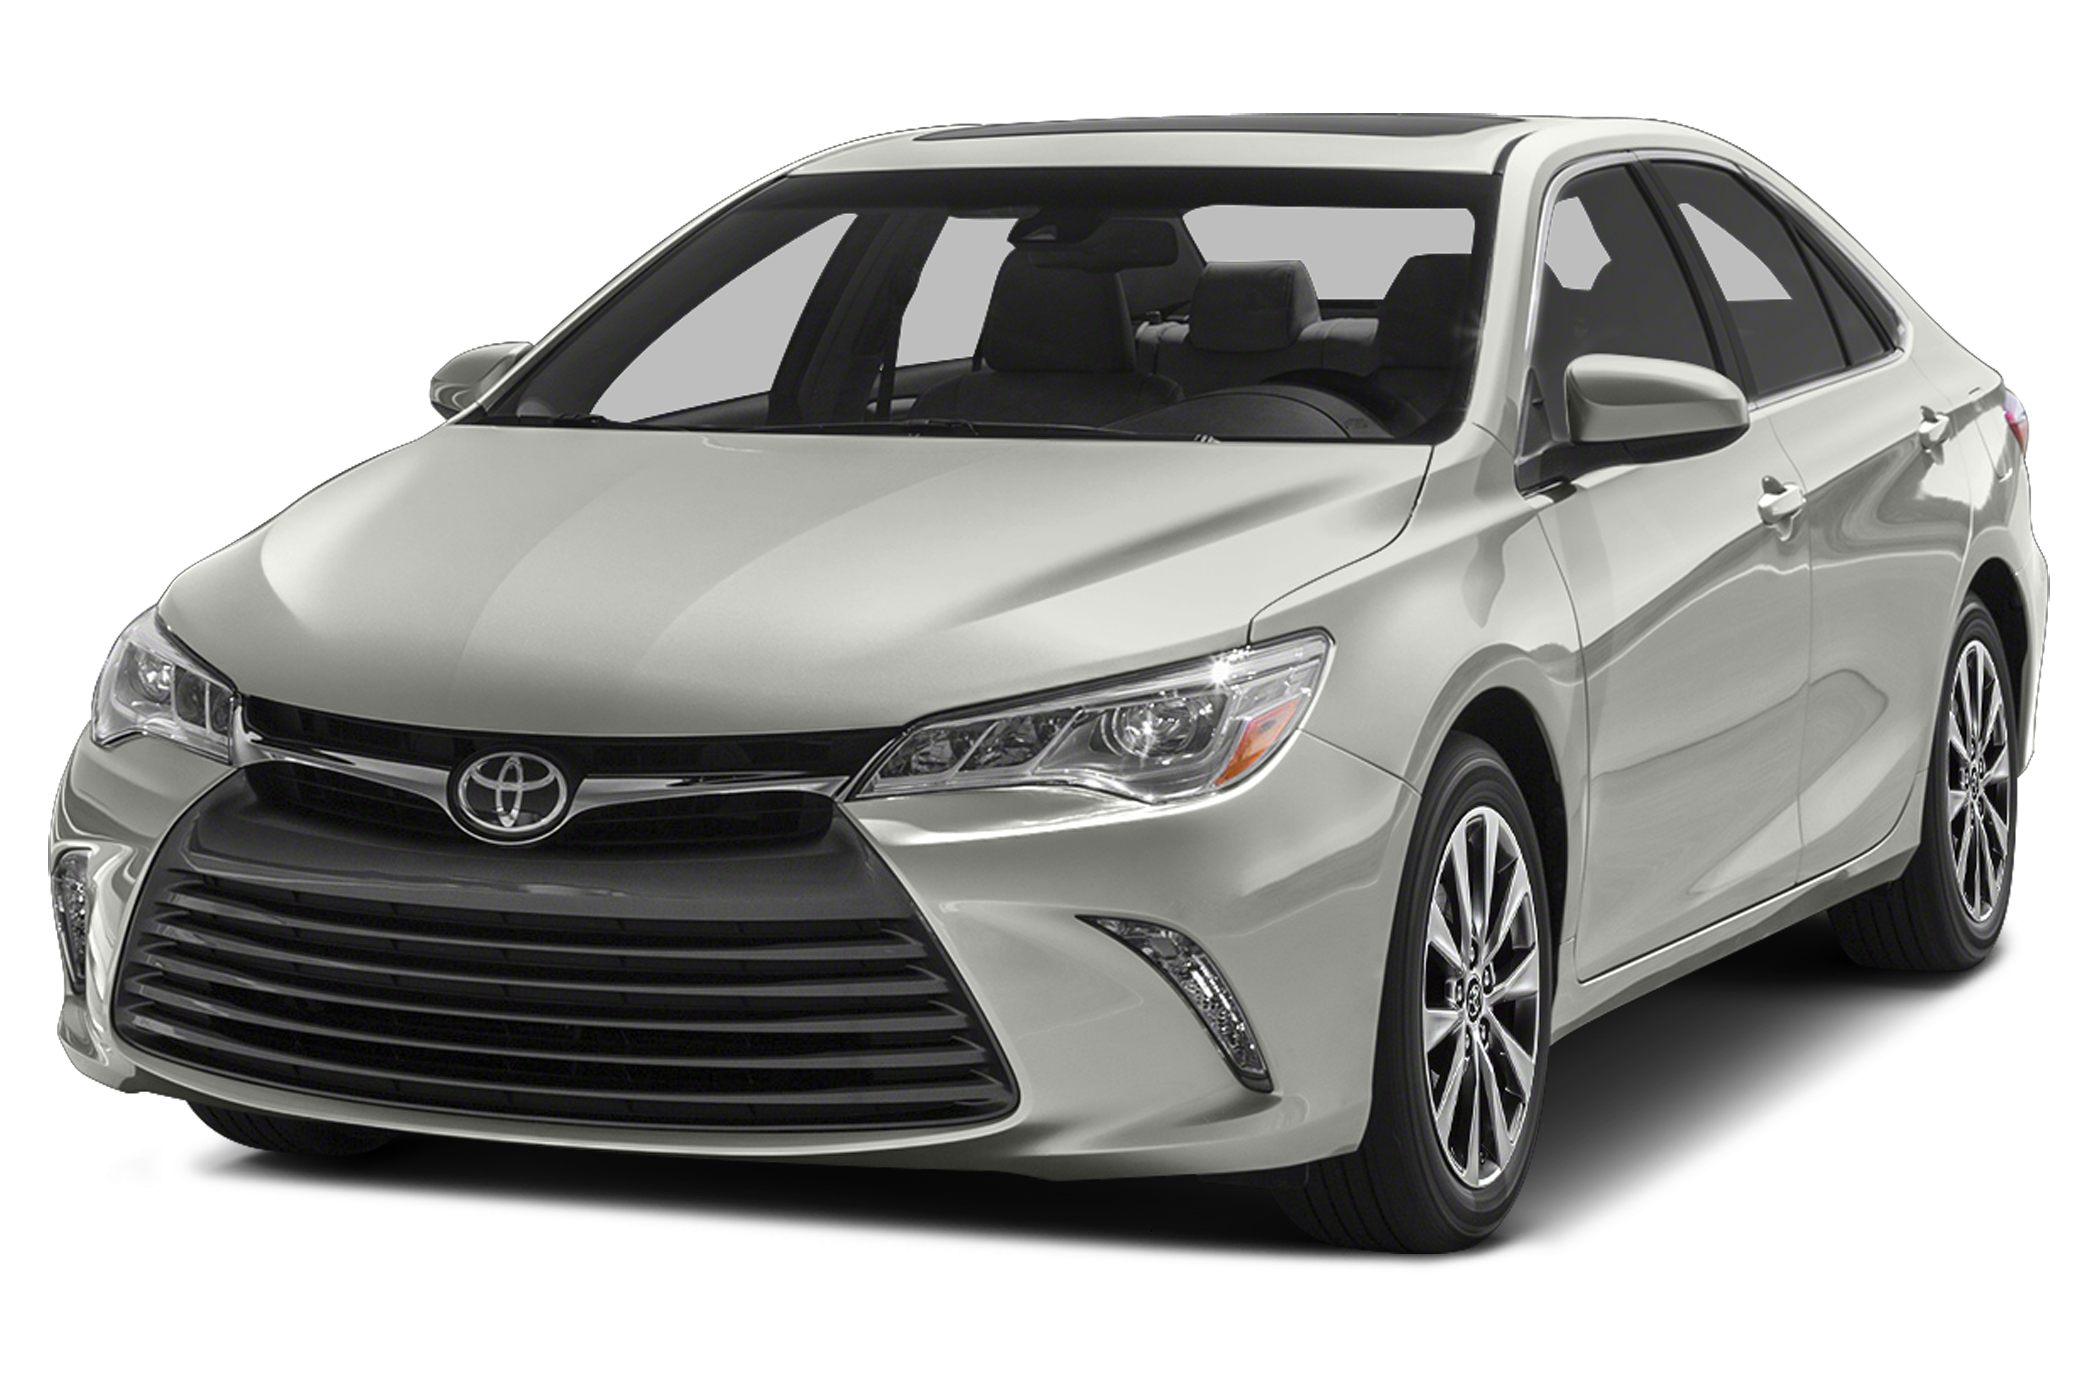 2015 Toyota Camry LE Sedan for sale in Bethesda for $20,428 with 0 miles